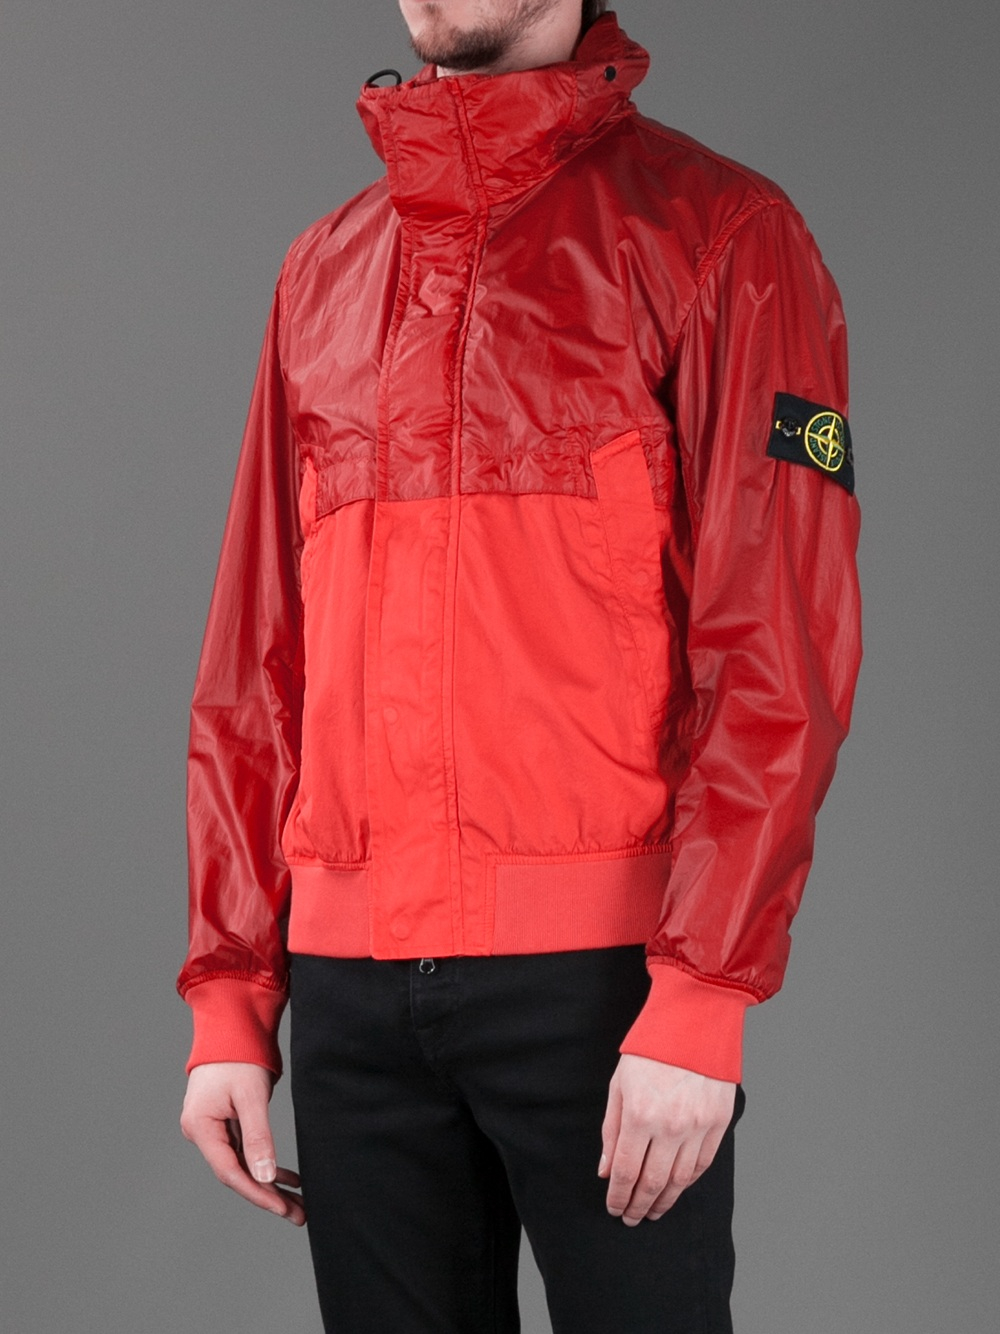 stone island zipup windbreaker jacket in red for men lyst. Black Bedroom Furniture Sets. Home Design Ideas